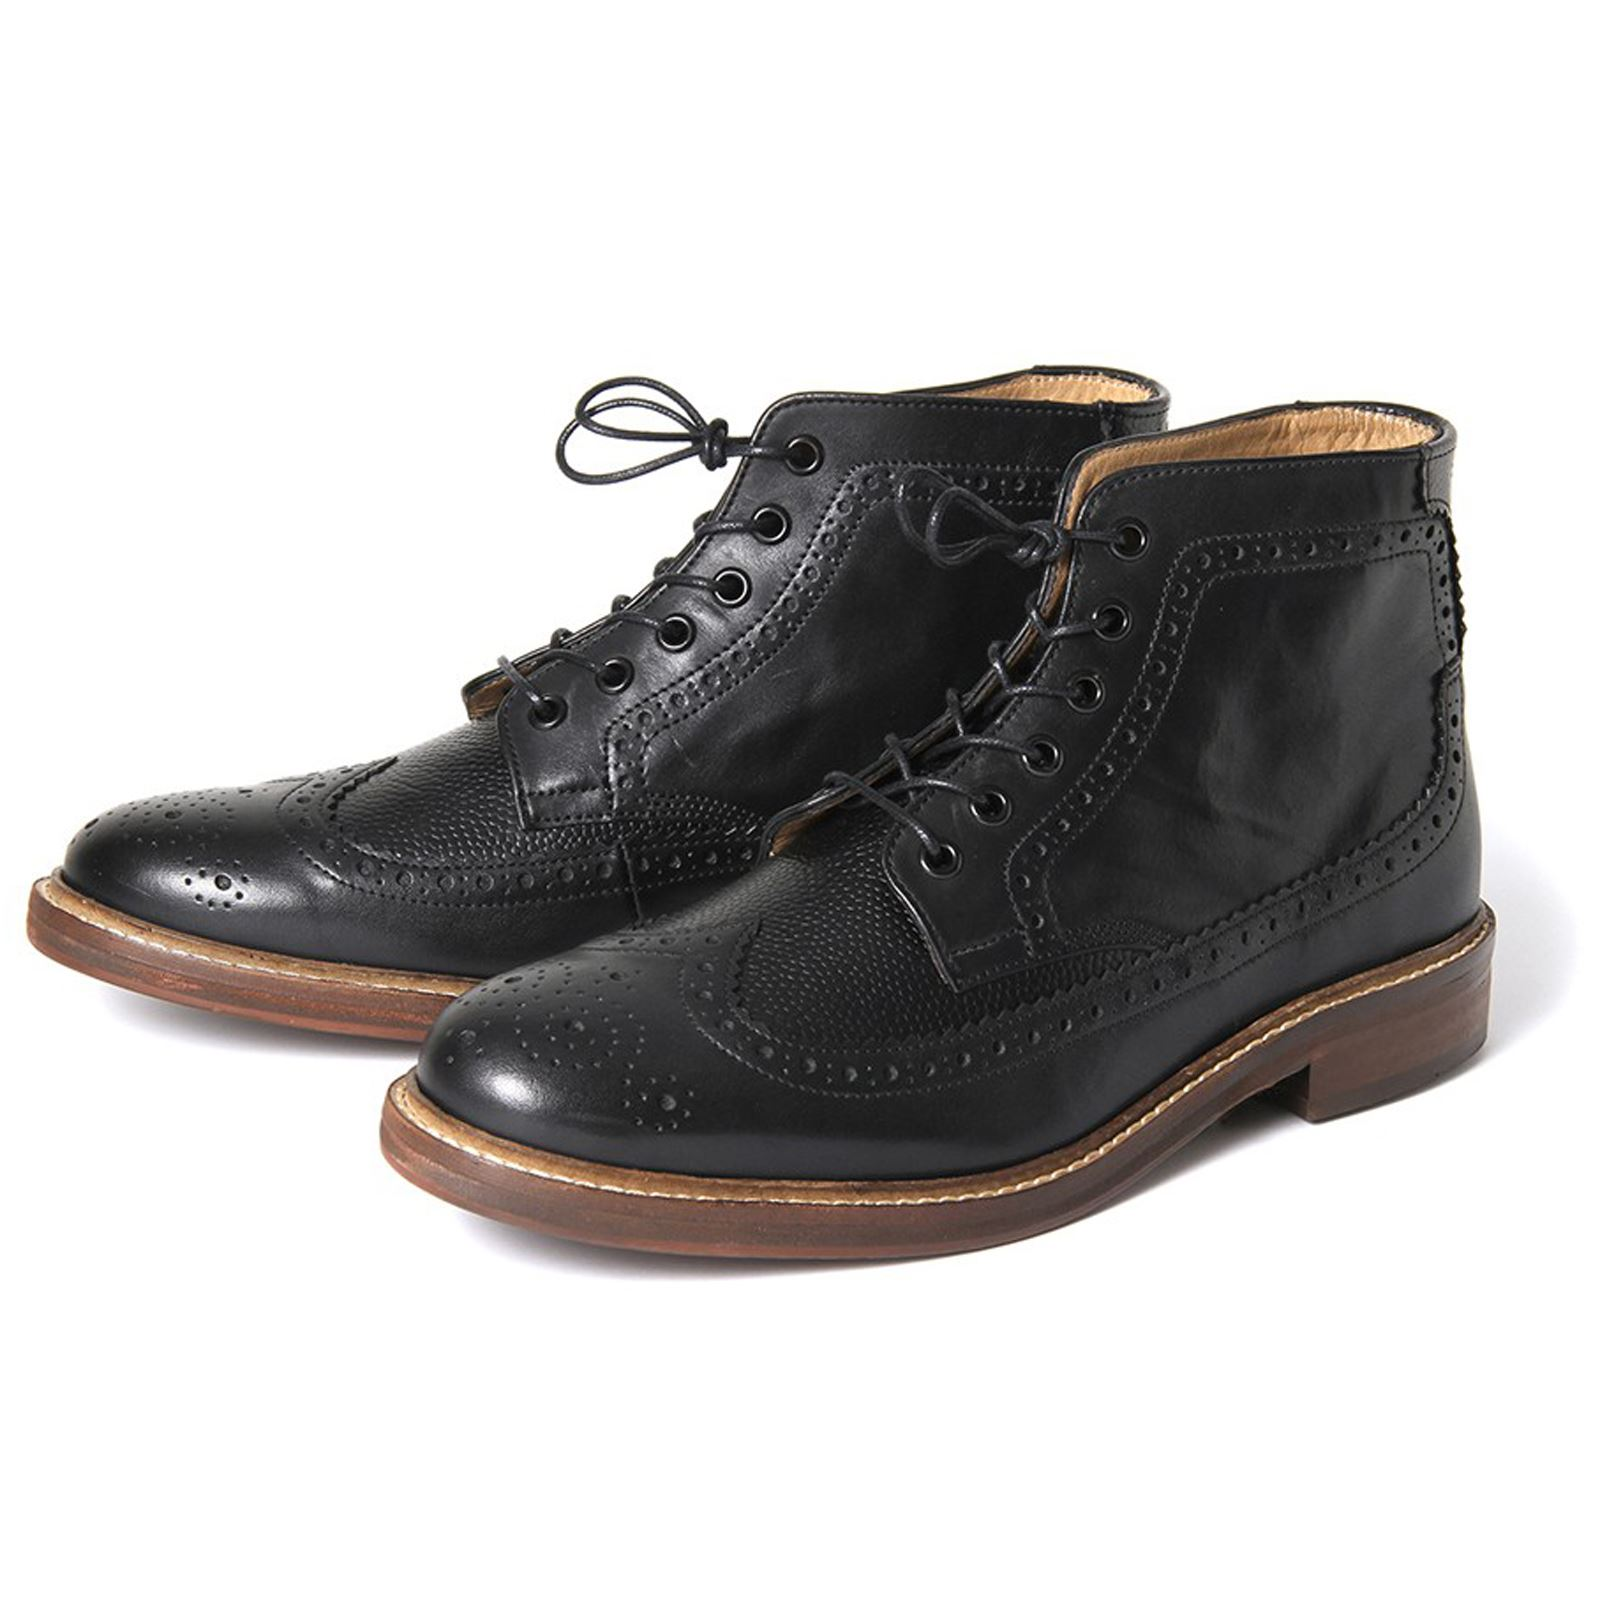 h by hudson boots hemming black leather mens brogue boot